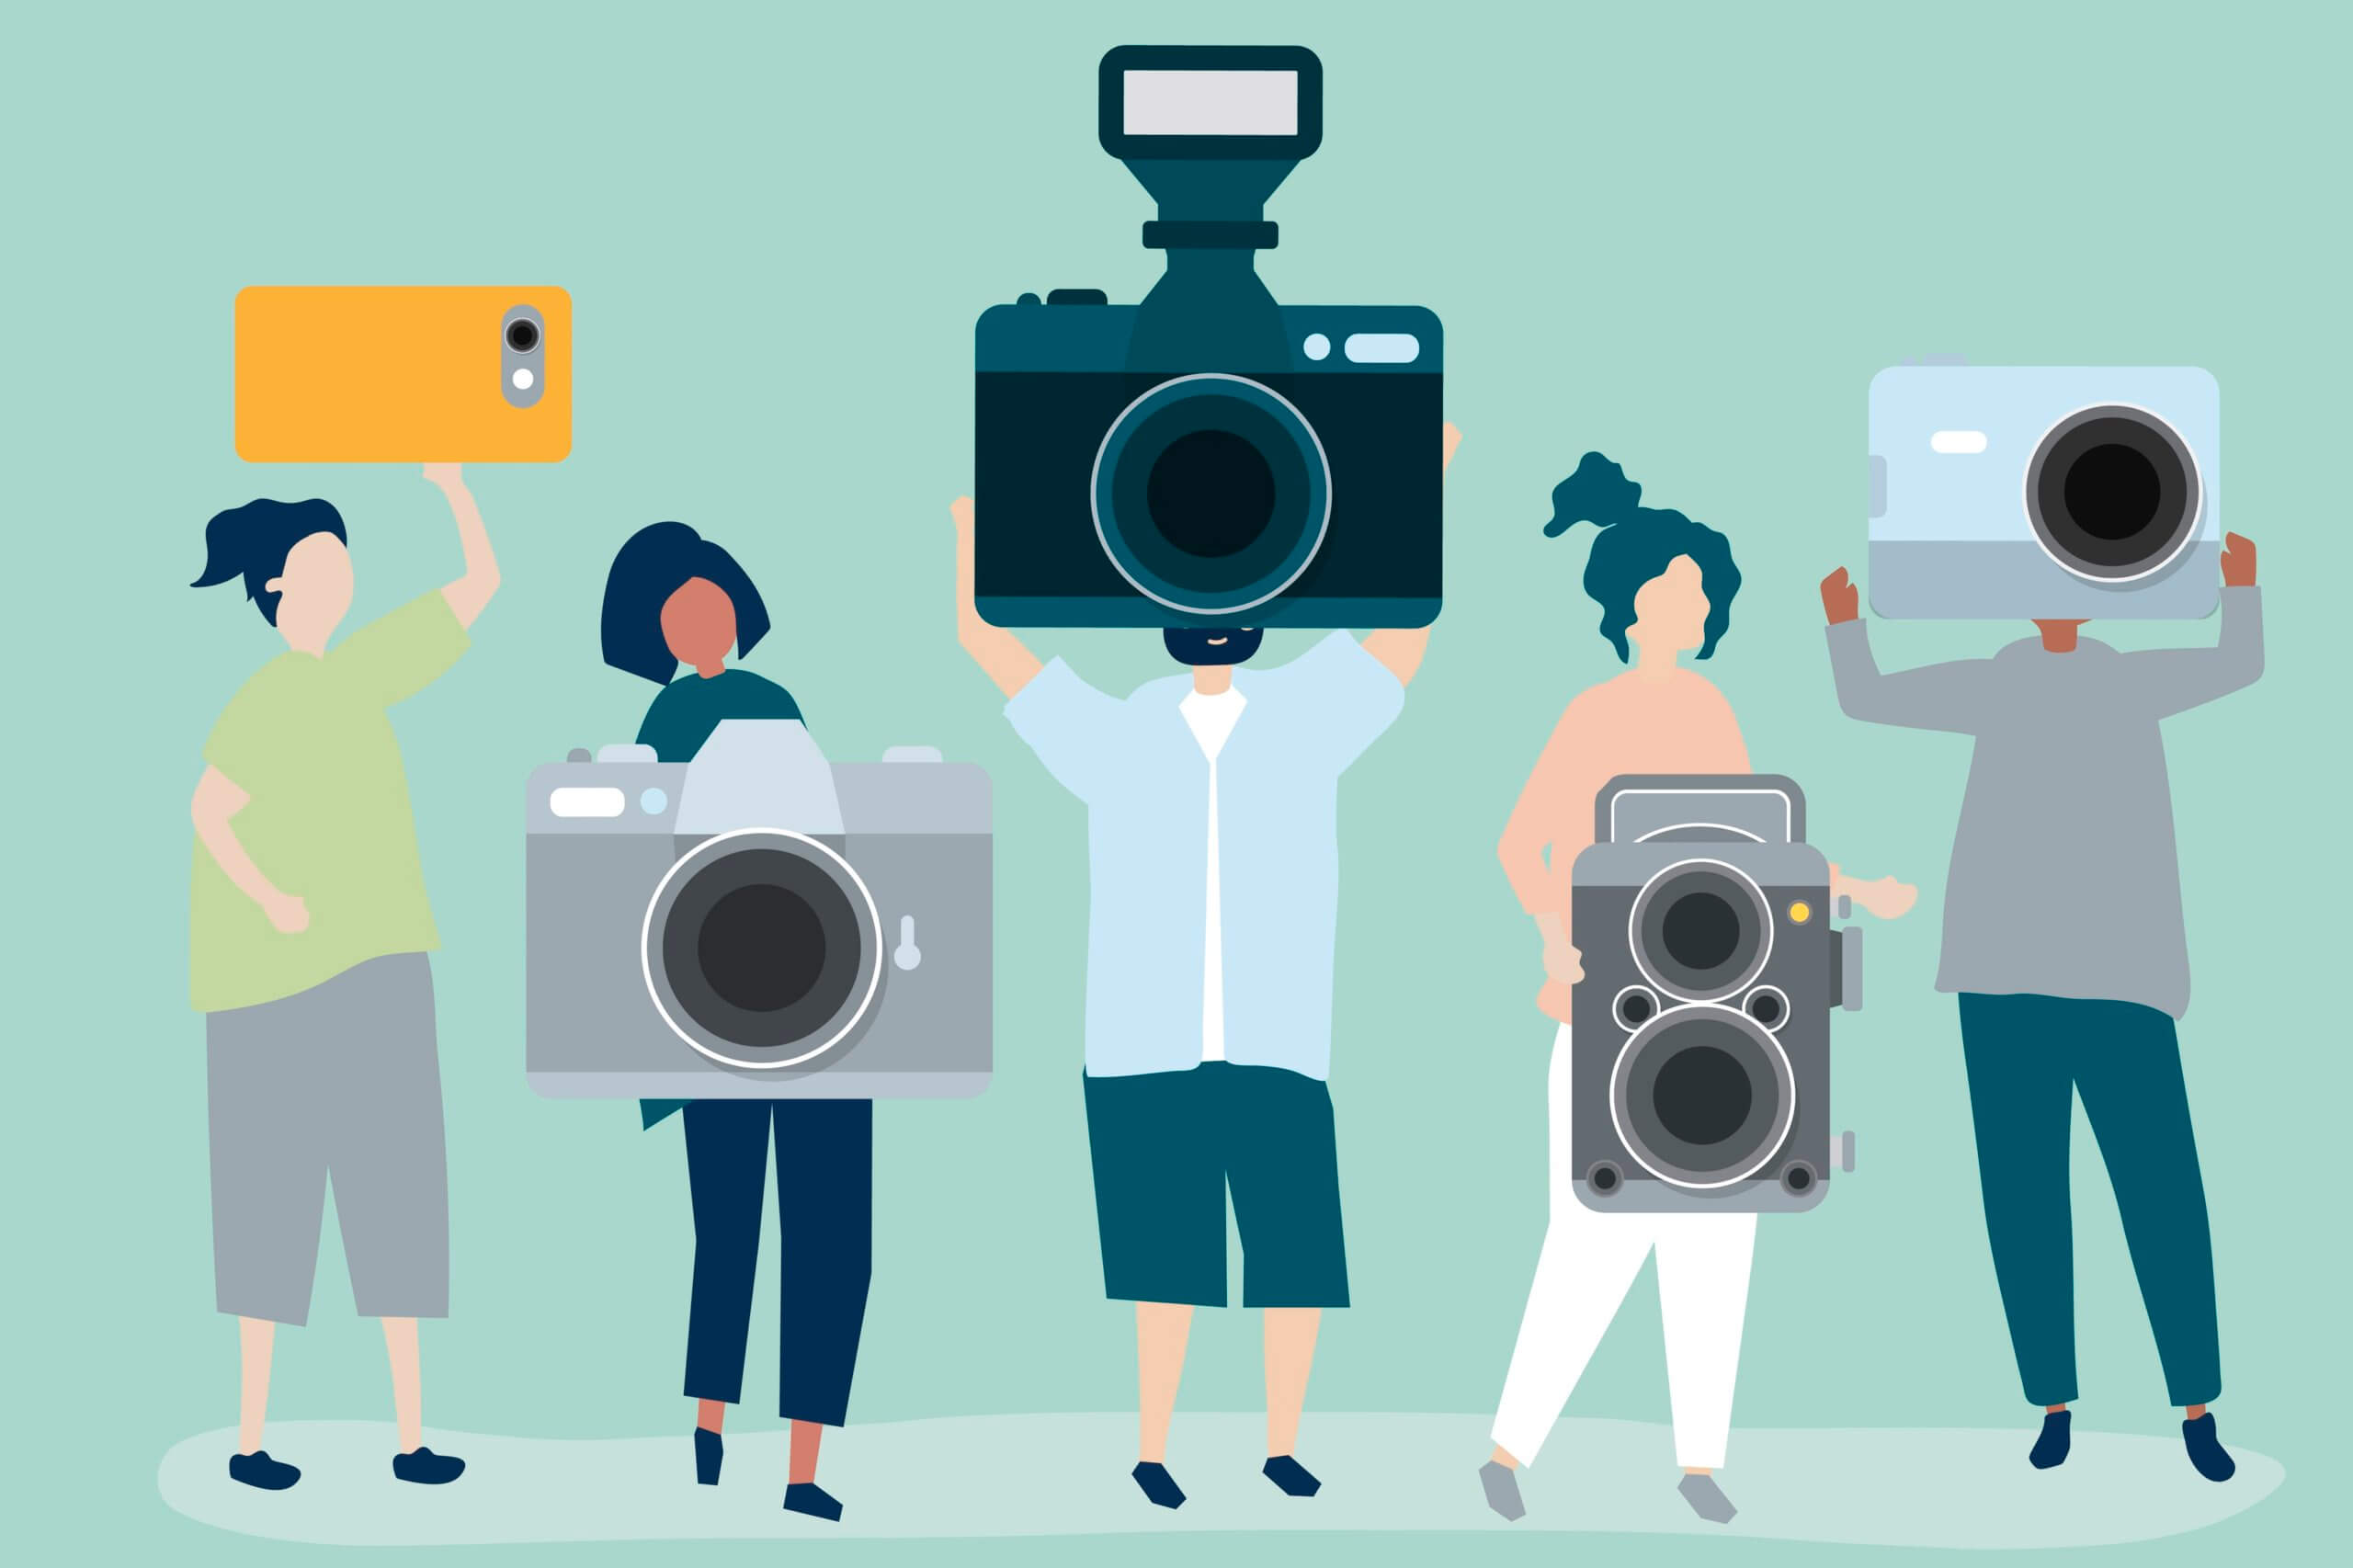 Image illustrates 5 people each of them holding a different type of camera